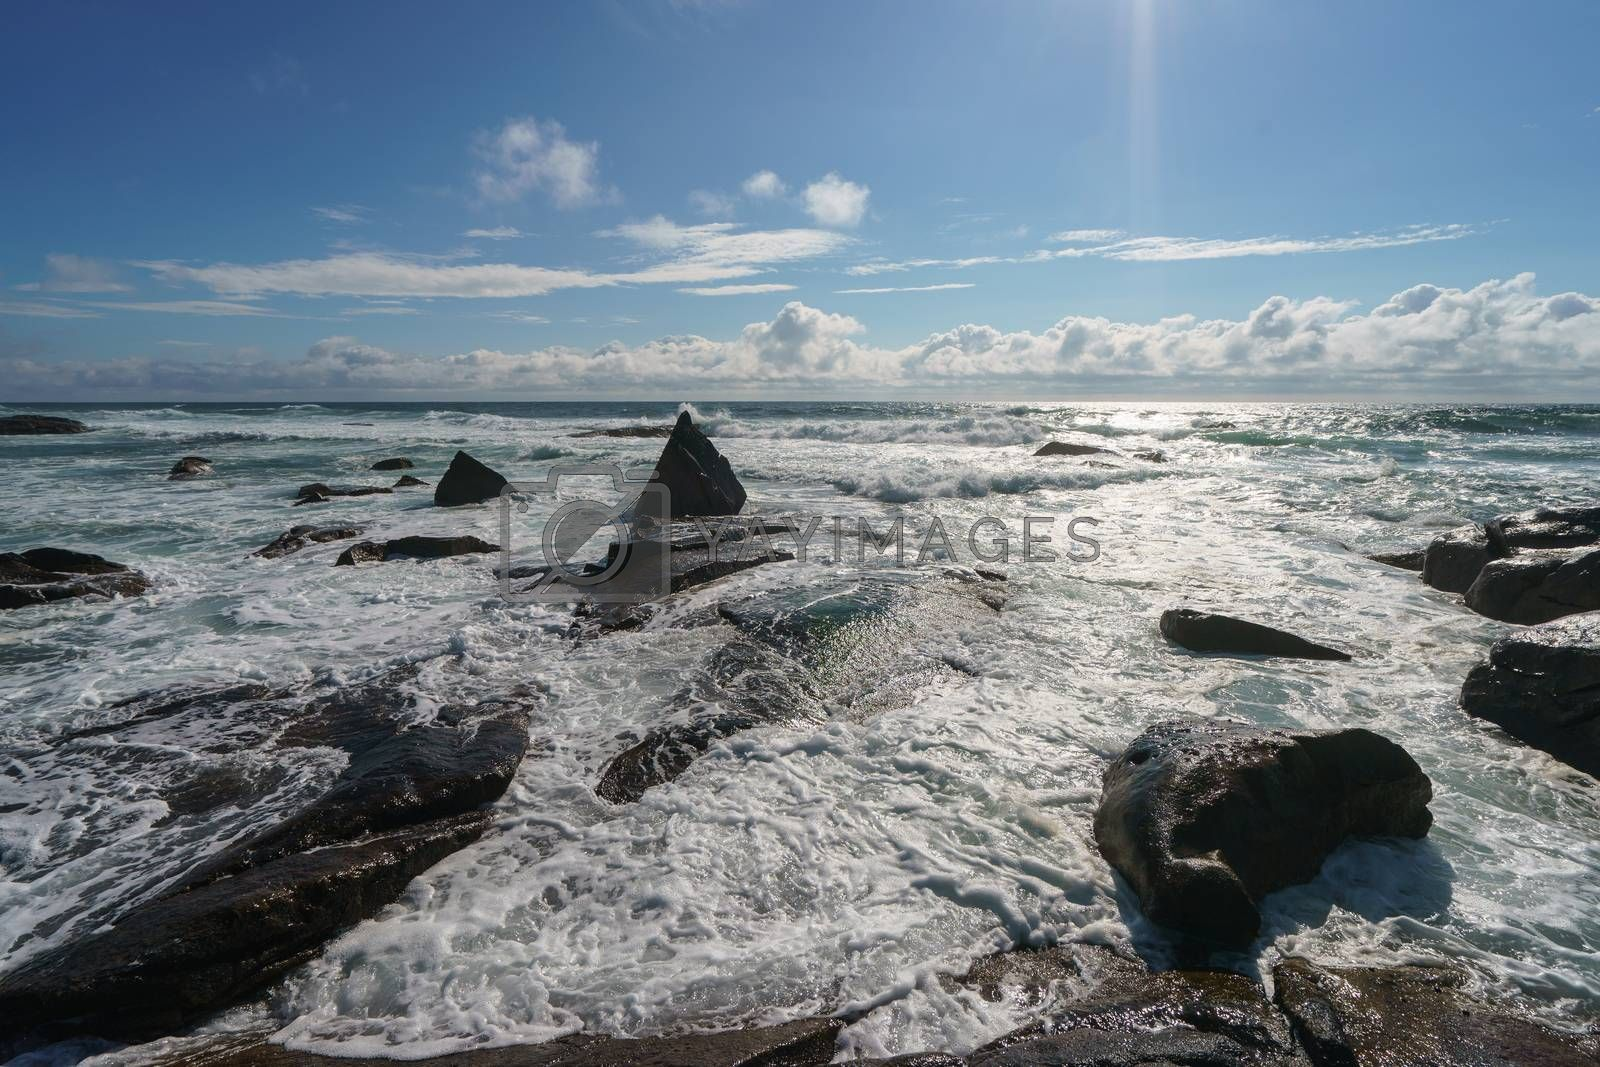 Ocean daytime landscape, giving strength. The space is filled with water, spray and ocean noise